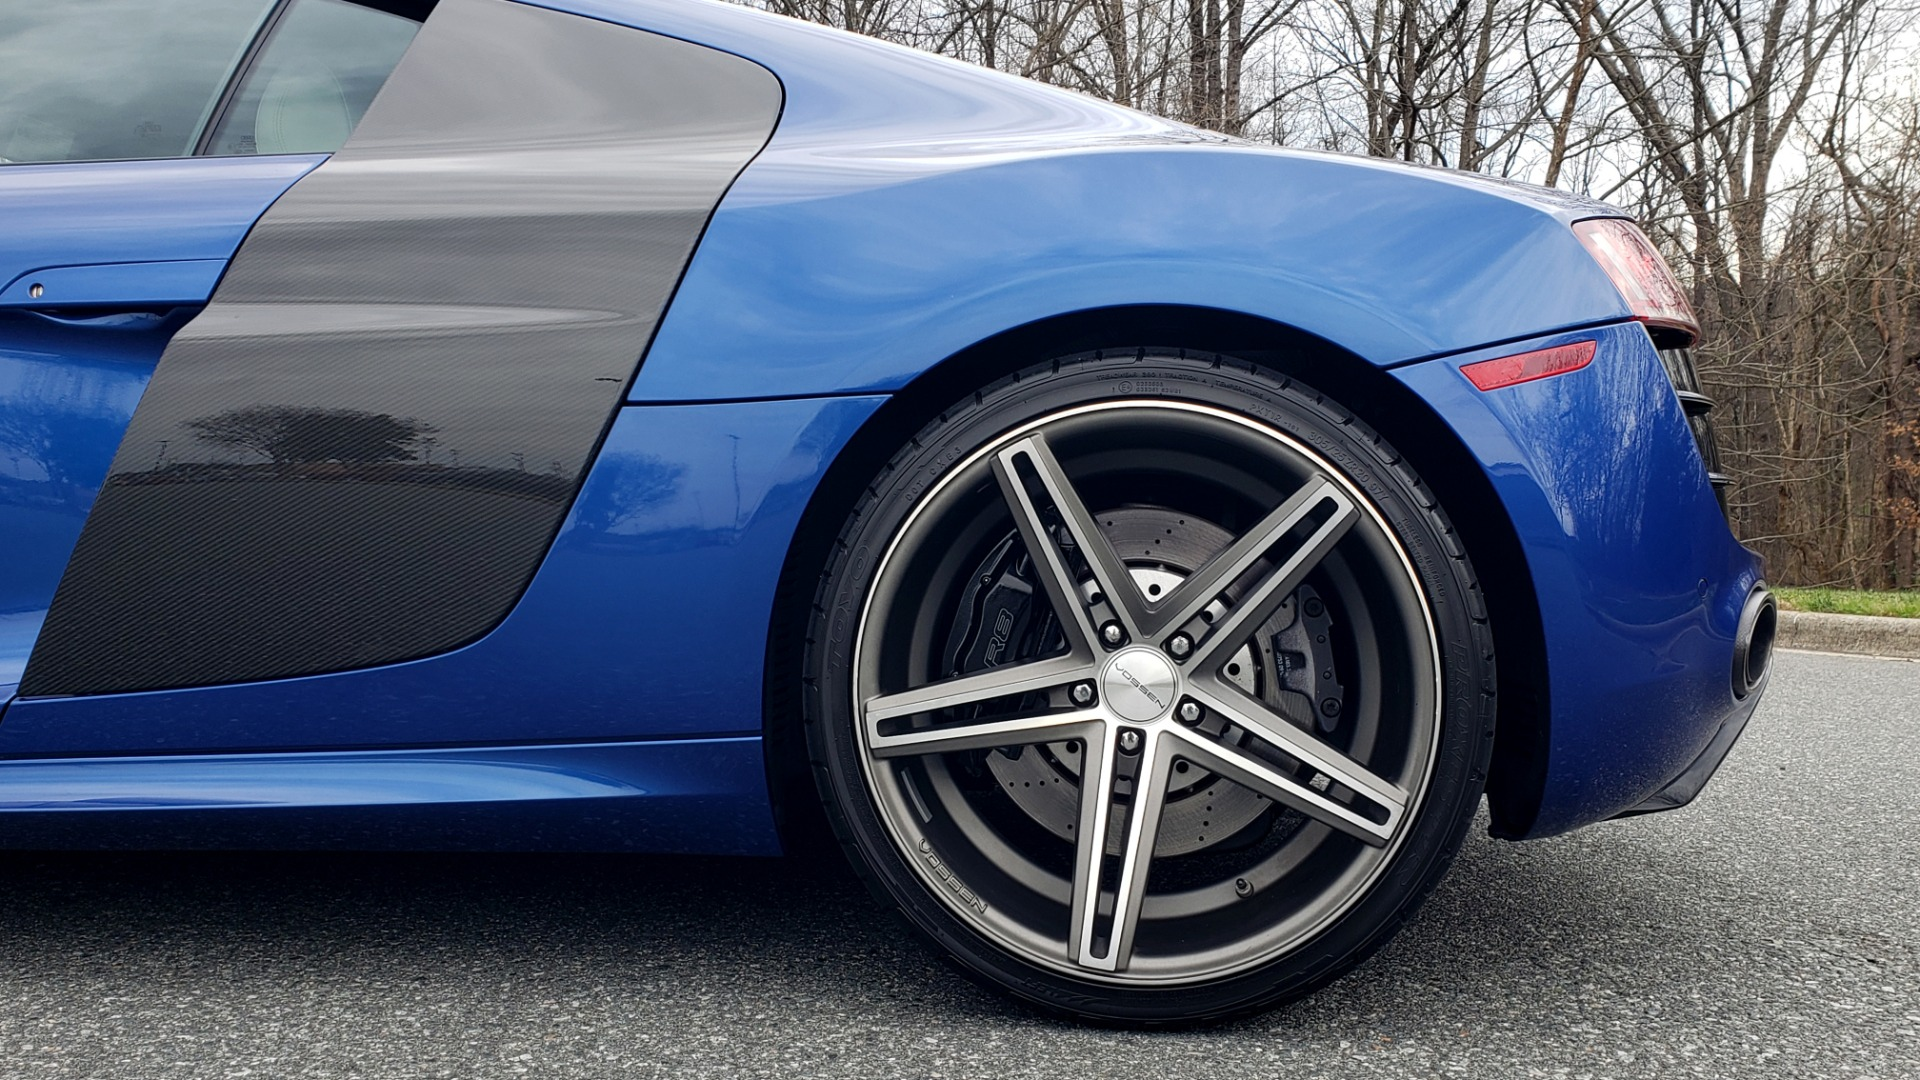 Used 2010 Audi R8 5.2L V10 / AWD / NAV / B&O SND / HTD STS / CUSTOM EXH & WHEELS for sale $78,000 at Formula Imports in Charlotte NC 28227 72